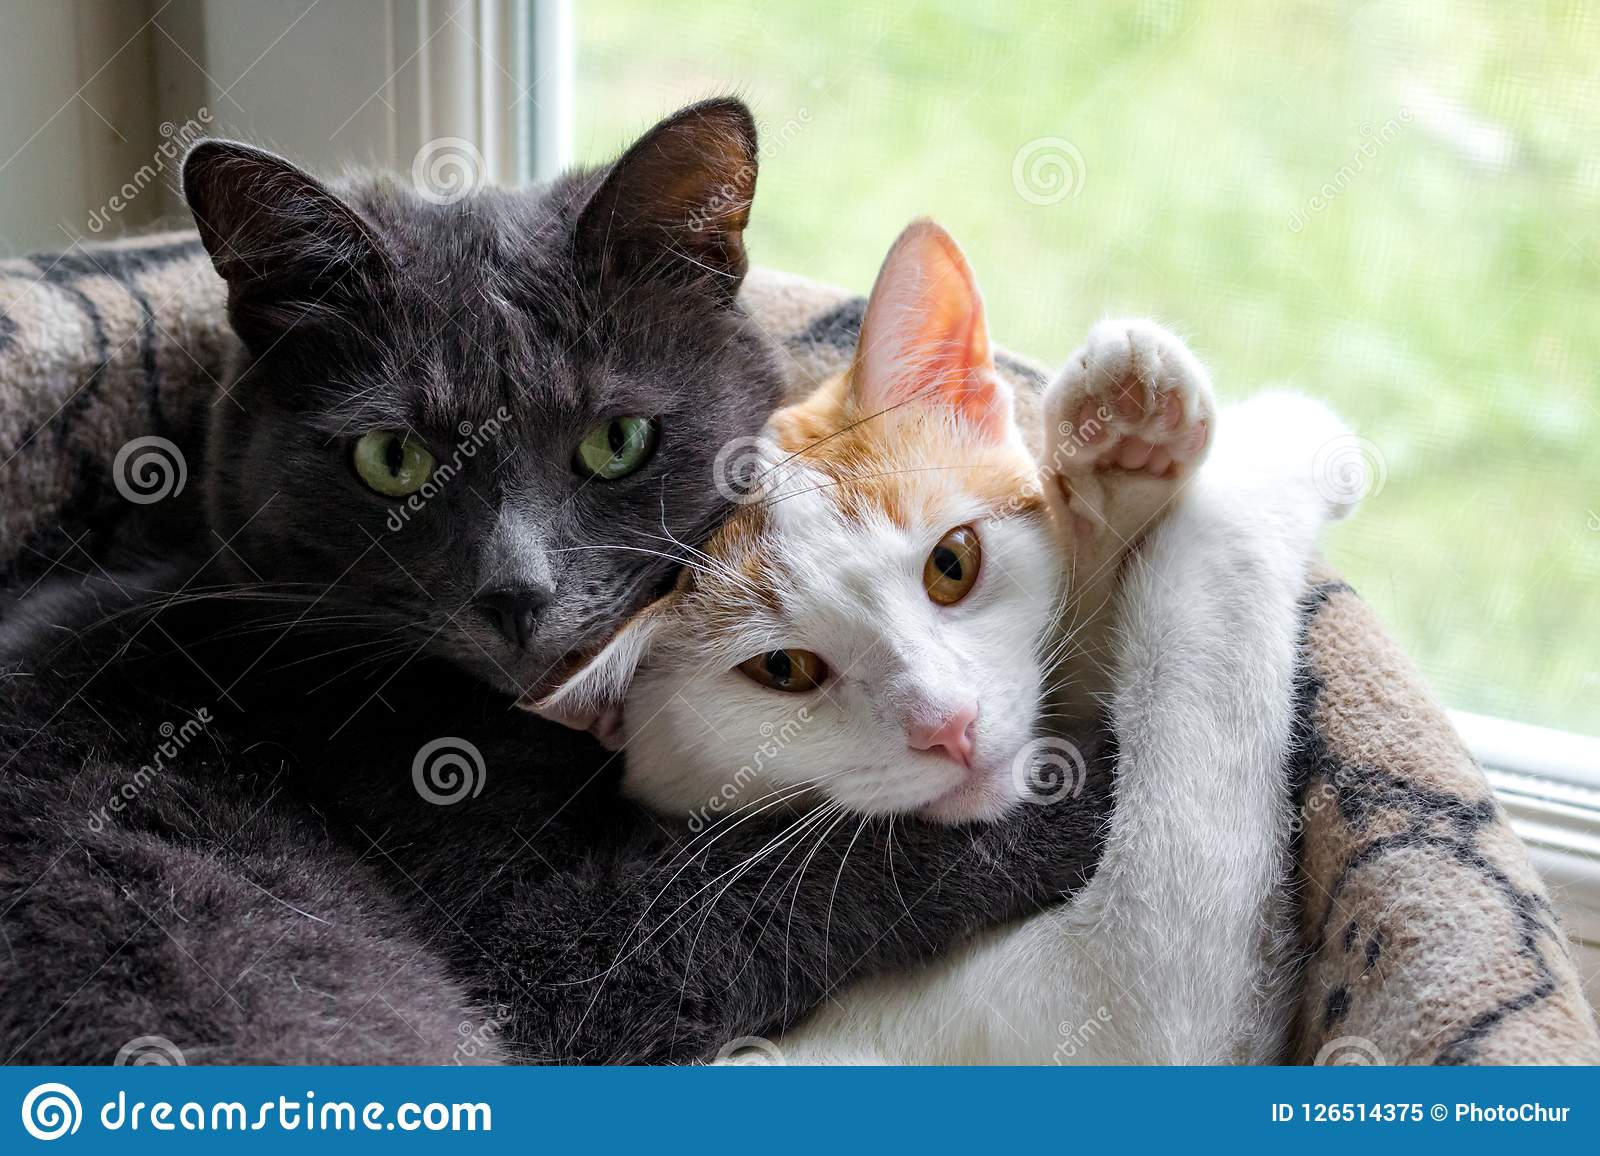 Gray cat and white pussycat sleep in embrace